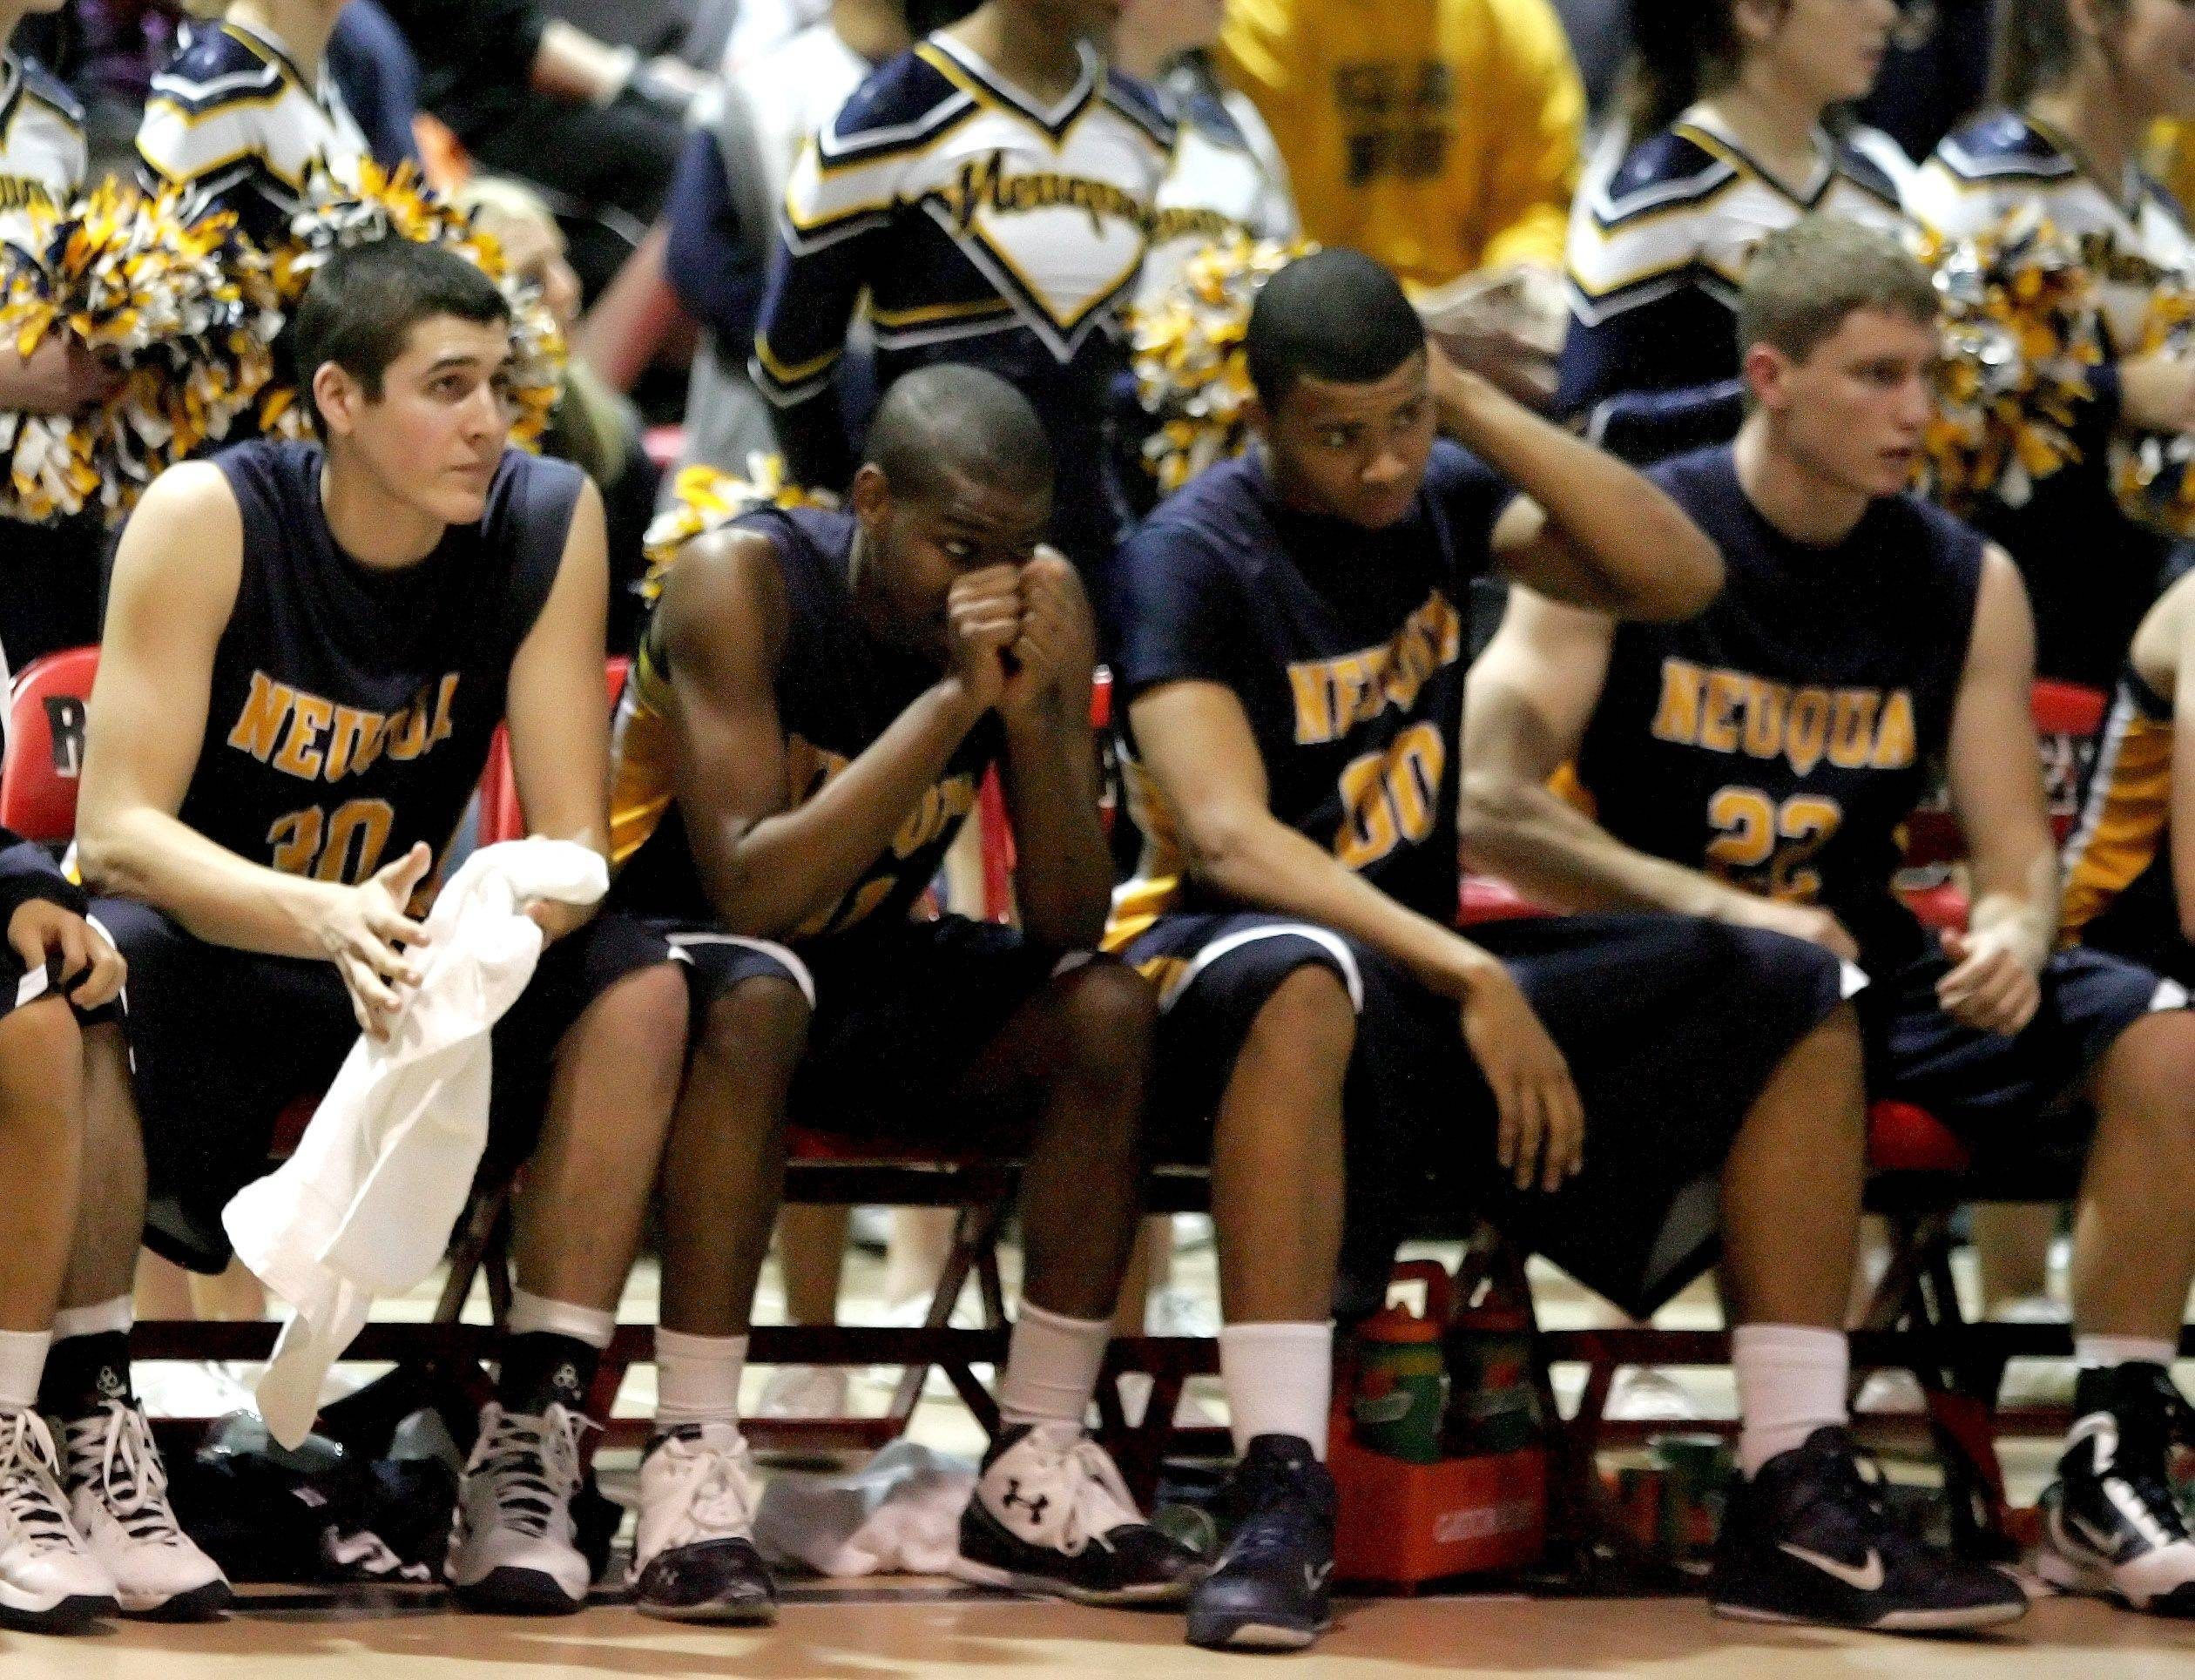 Neuqua Valley bench reacts during their loss to East Aurora at the regional boys basketball championship Friday at Bolingbrook High School.